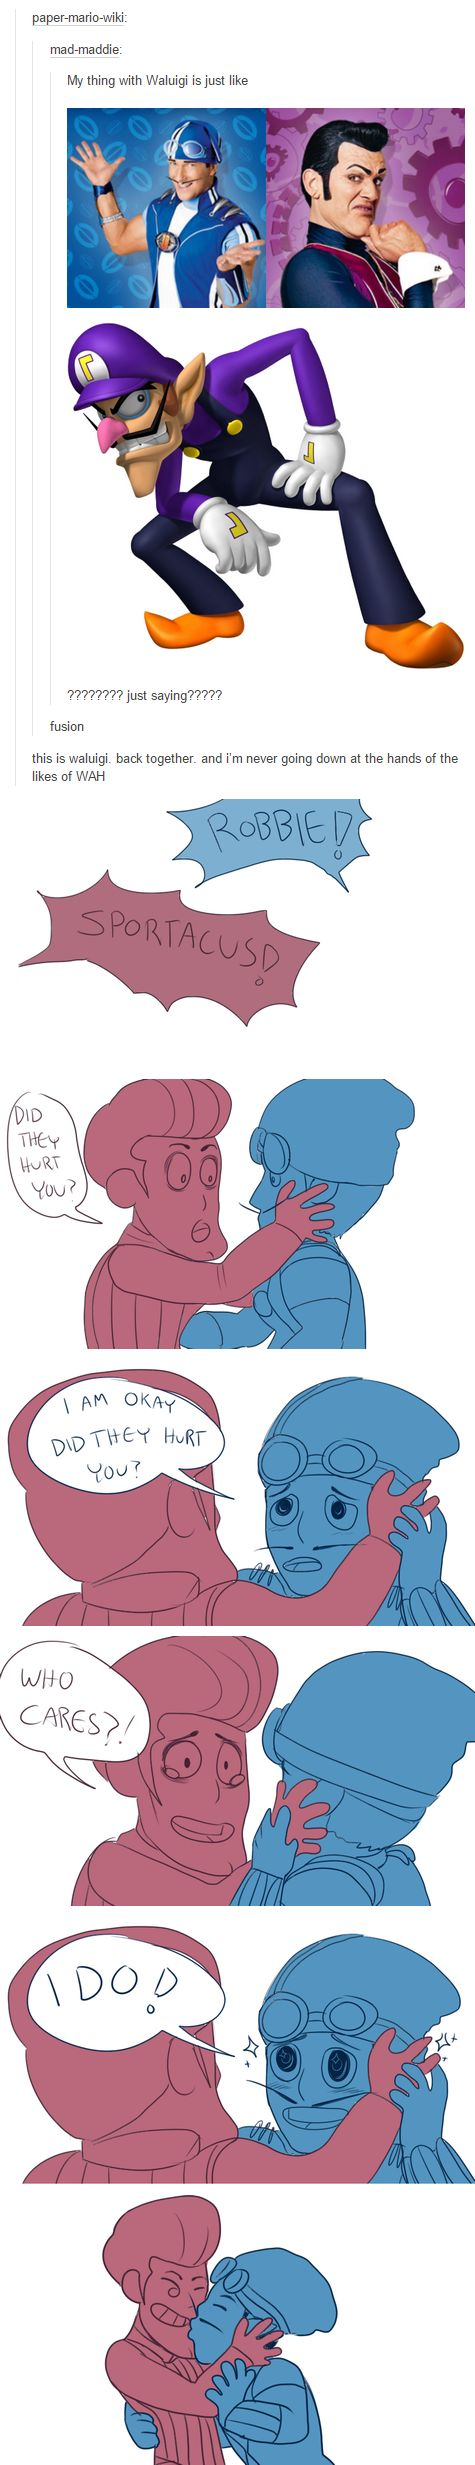 Why, why is this so funny, something is wrong with me , Steven universe you have turned me evil lol I'm not even going to care